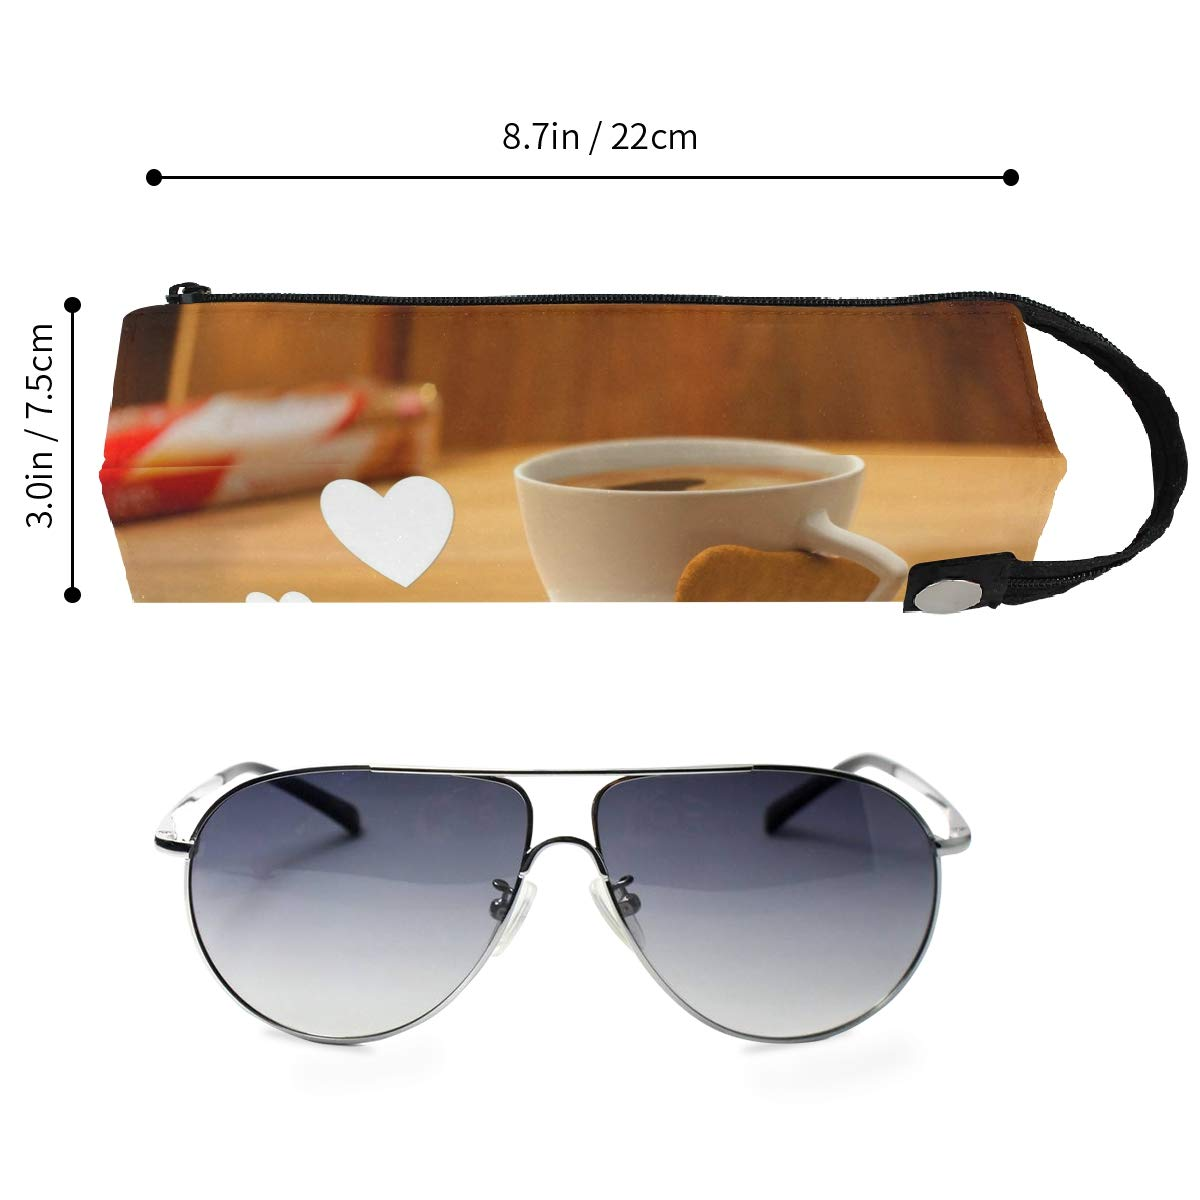 Glasses Case Loving Coffee and Cookies Portable Soft Sunglasses Pen Bag Protective Pouch